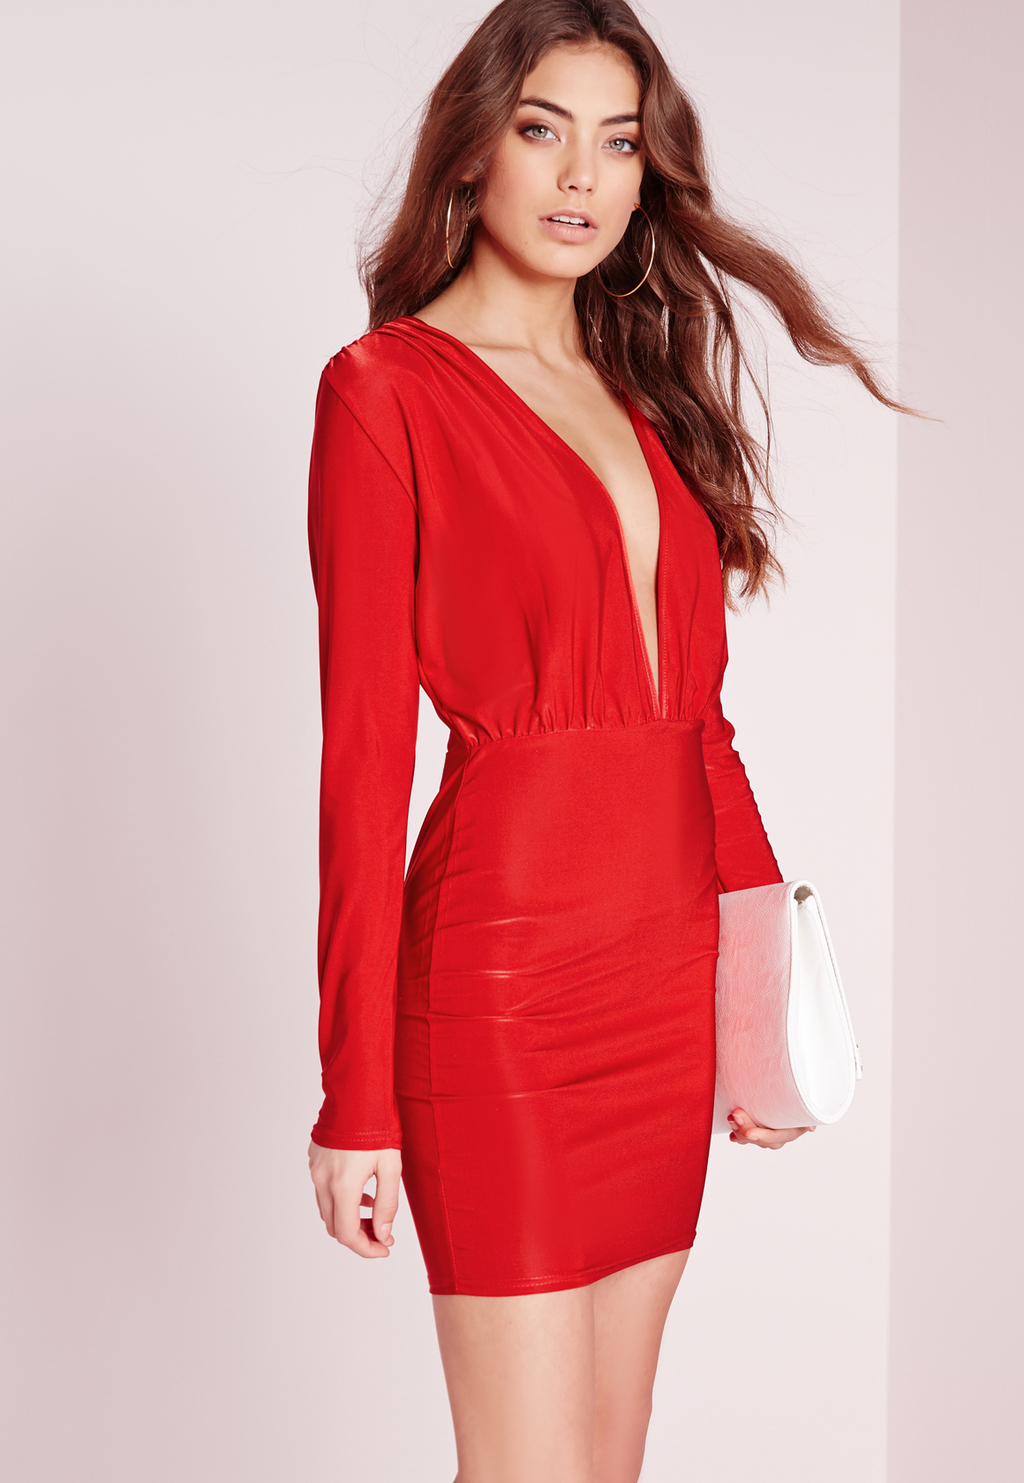 Slinky Long Sleeve Bodycon Dress Red, Red - style: shift; length: mid thigh; neckline: plunge; fit: fitted at waist; pattern: plain; predominant colour: true red; occasions: evening; fibres: polyester/polyamide - 100%; sleeve length: long sleeve; sleeve style: standard; pattern type: fabric; texture group: other - light to midweight; season: s/s 2016; wardrobe: event